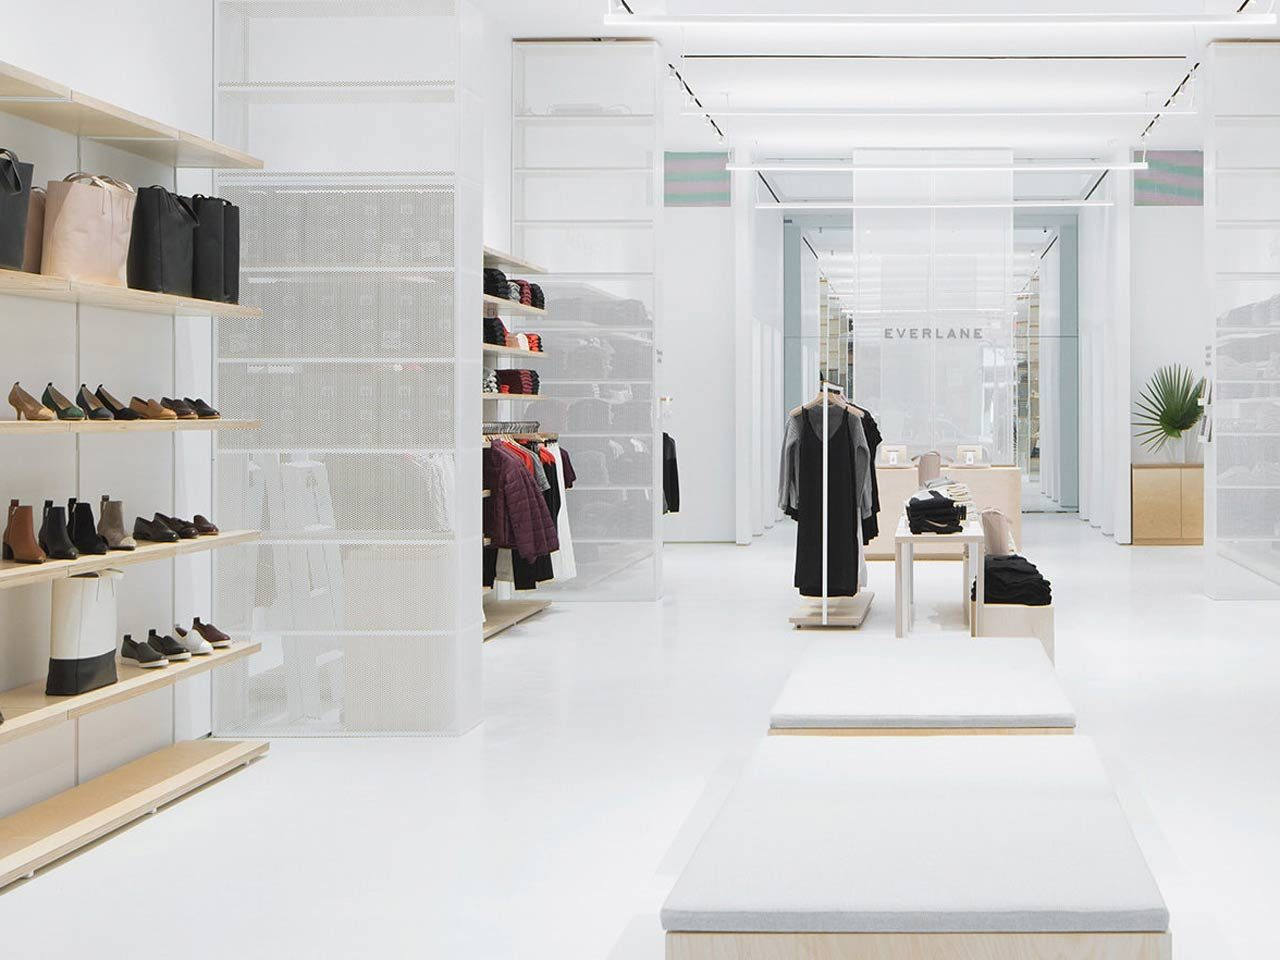 EVERLANE-ETUDE-HAVAS-SHoPPER